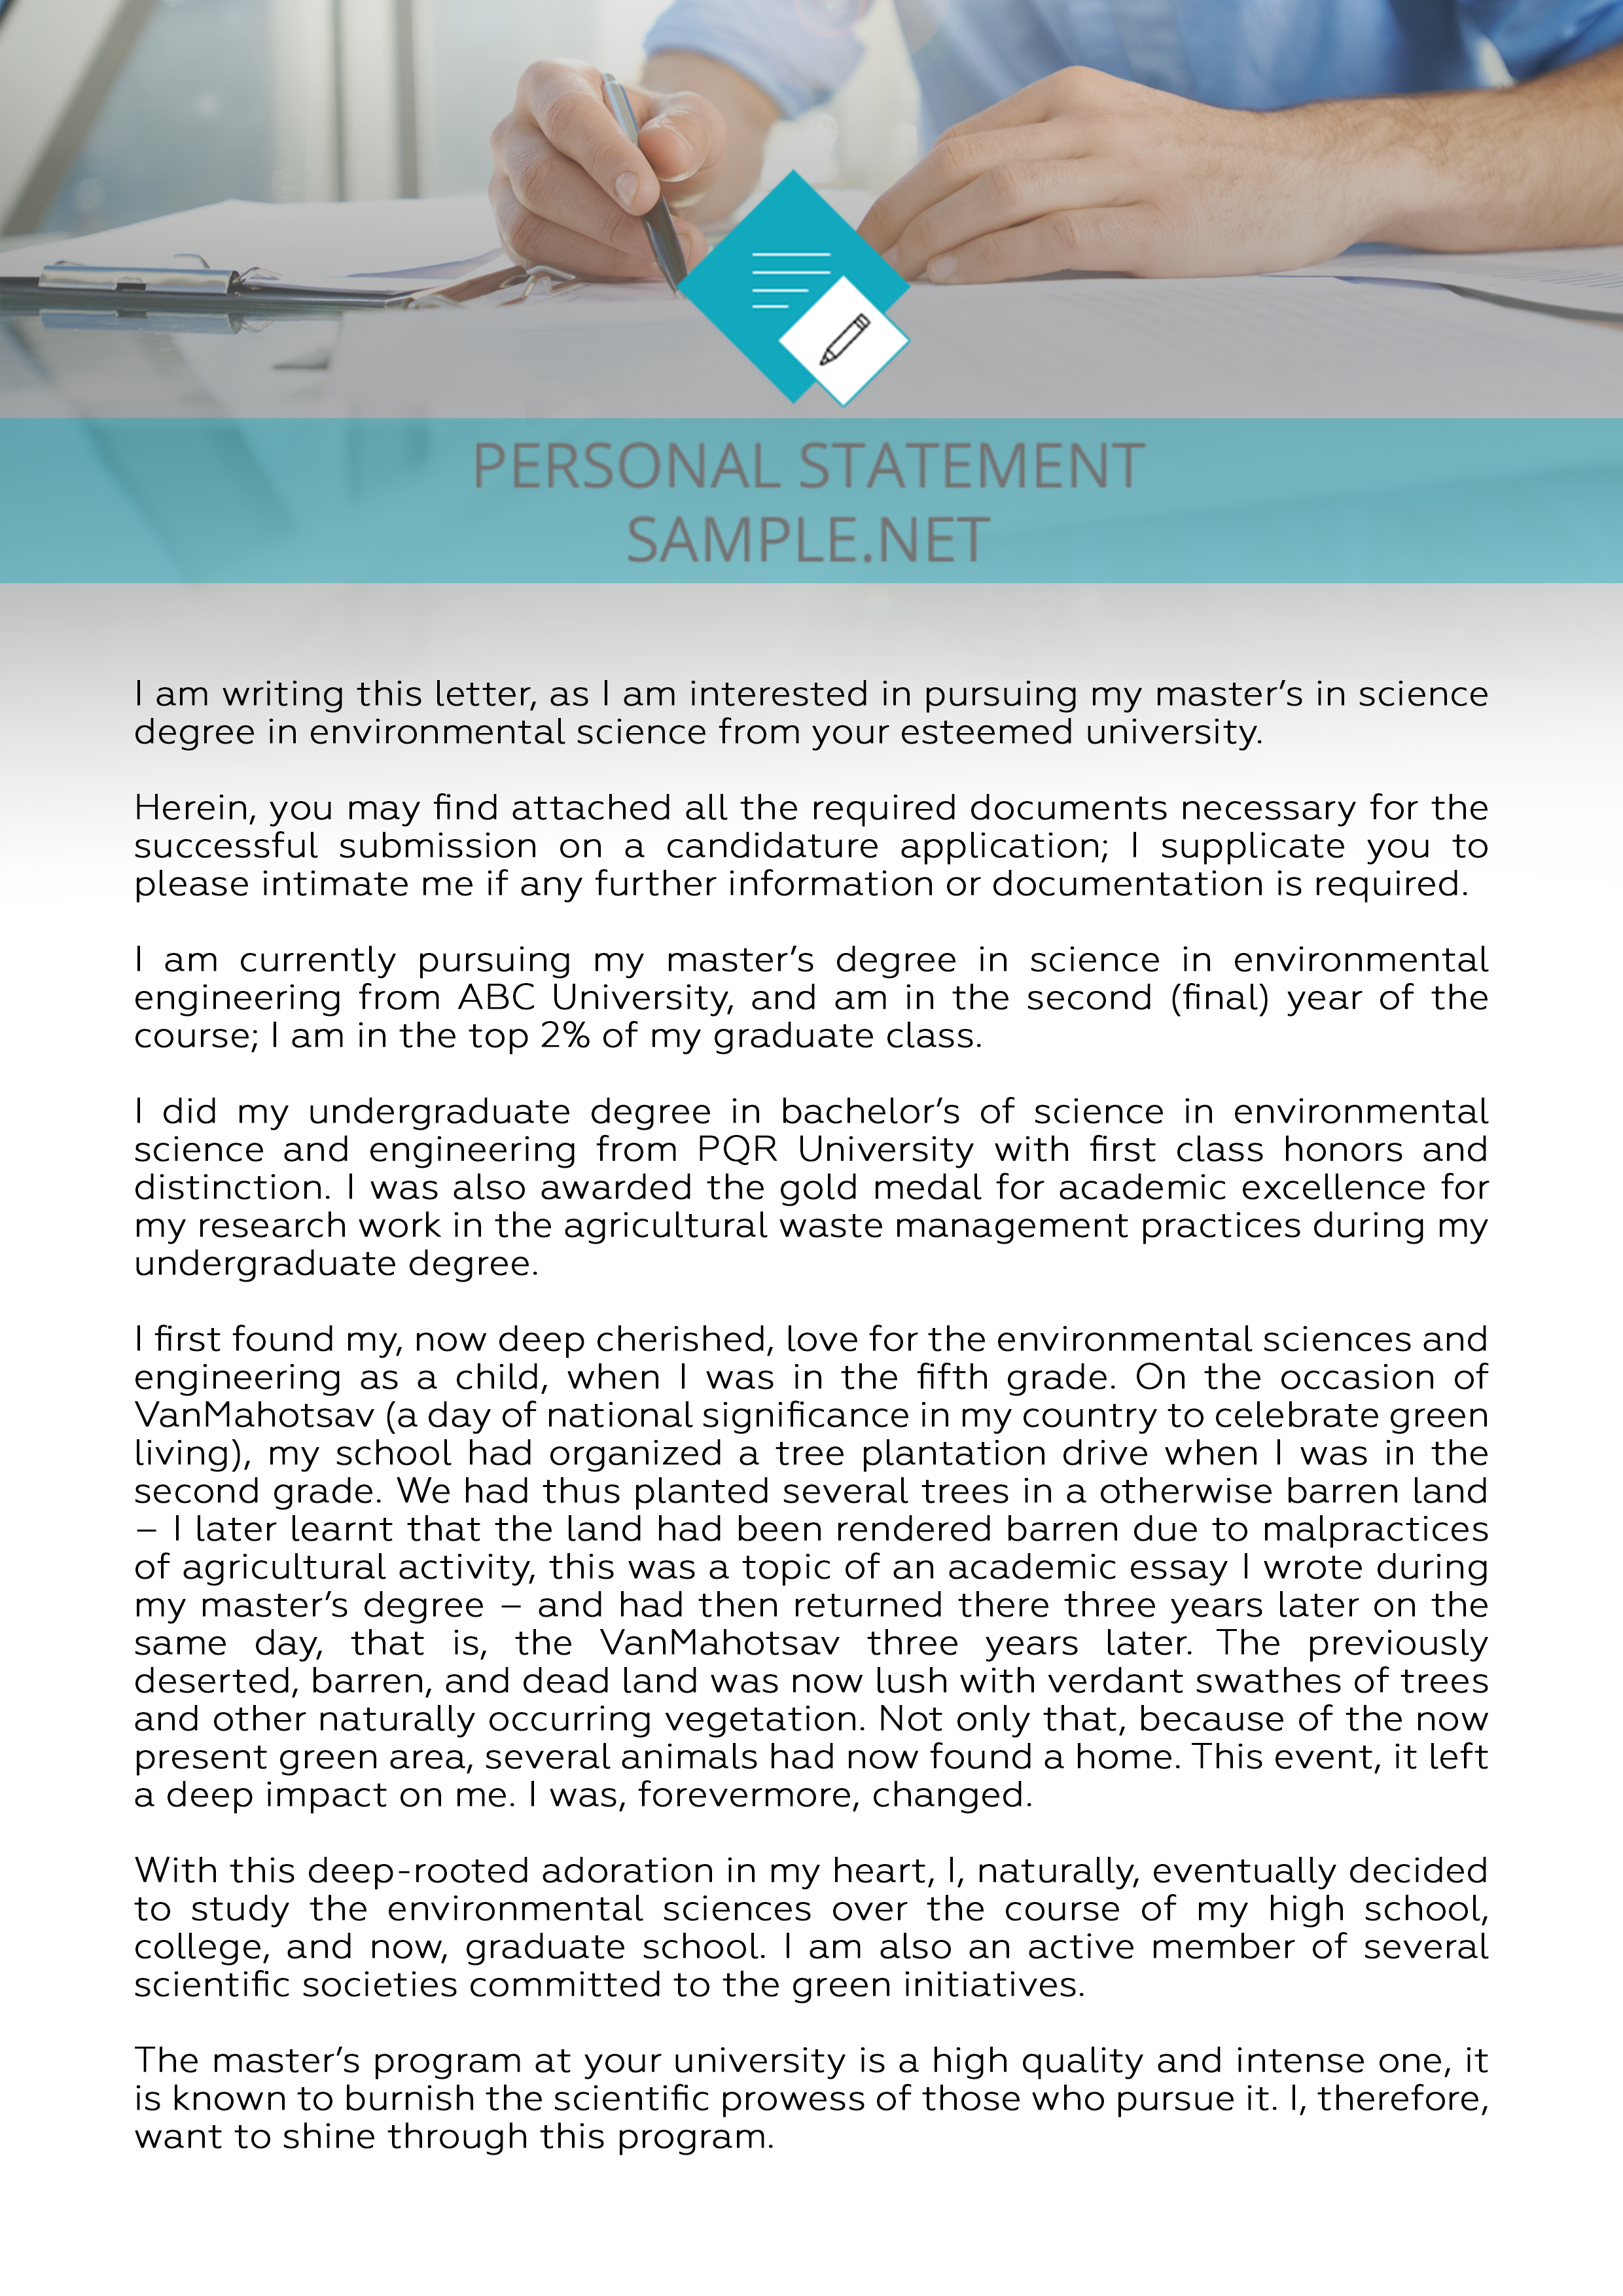 personal statement for environmental science sample